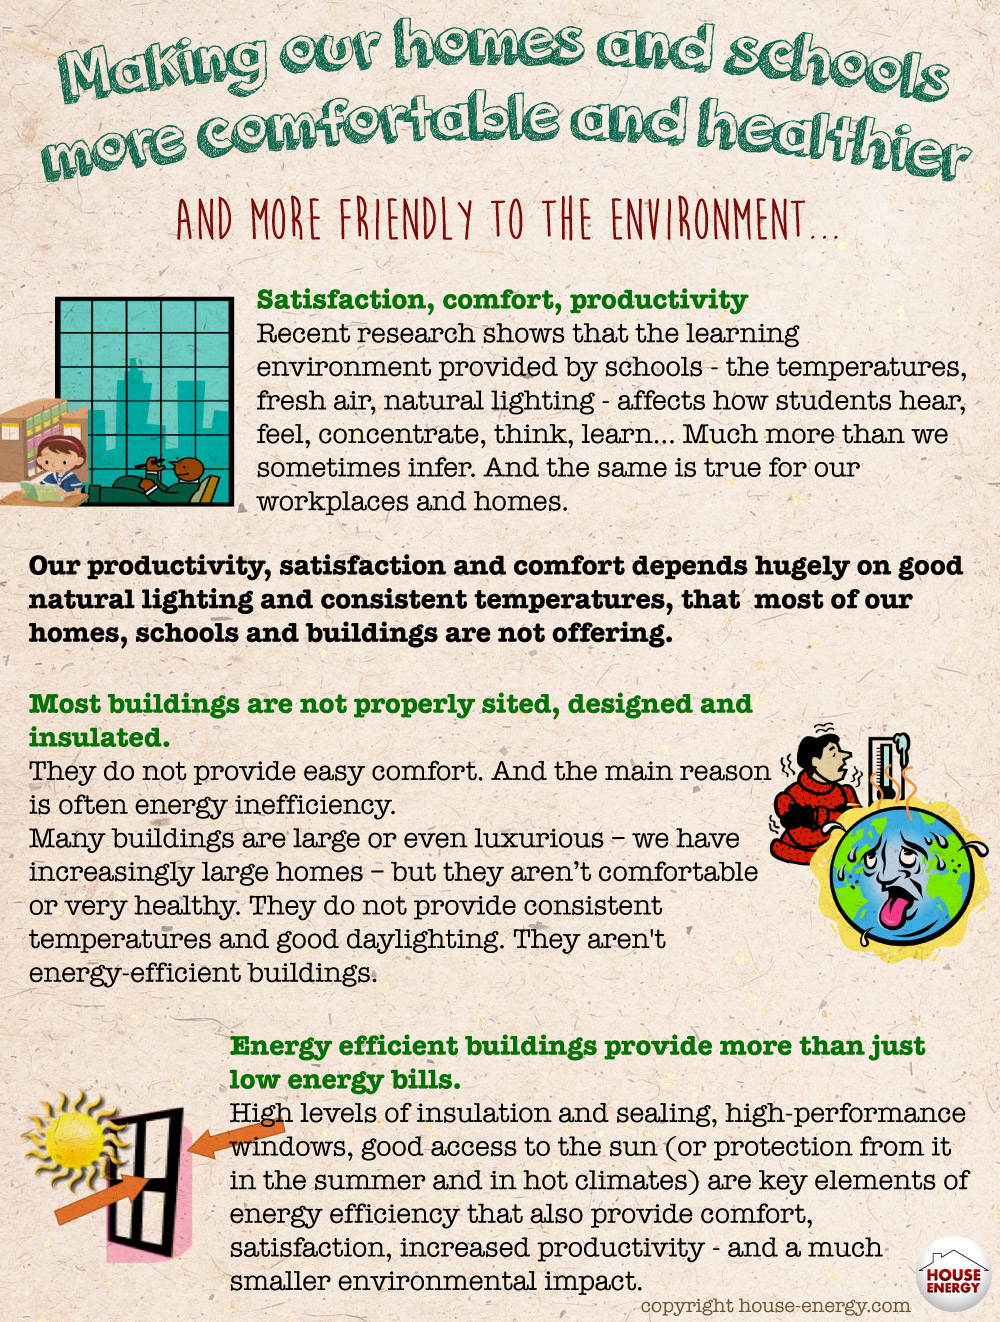 Comfortable and healthier homes and schools